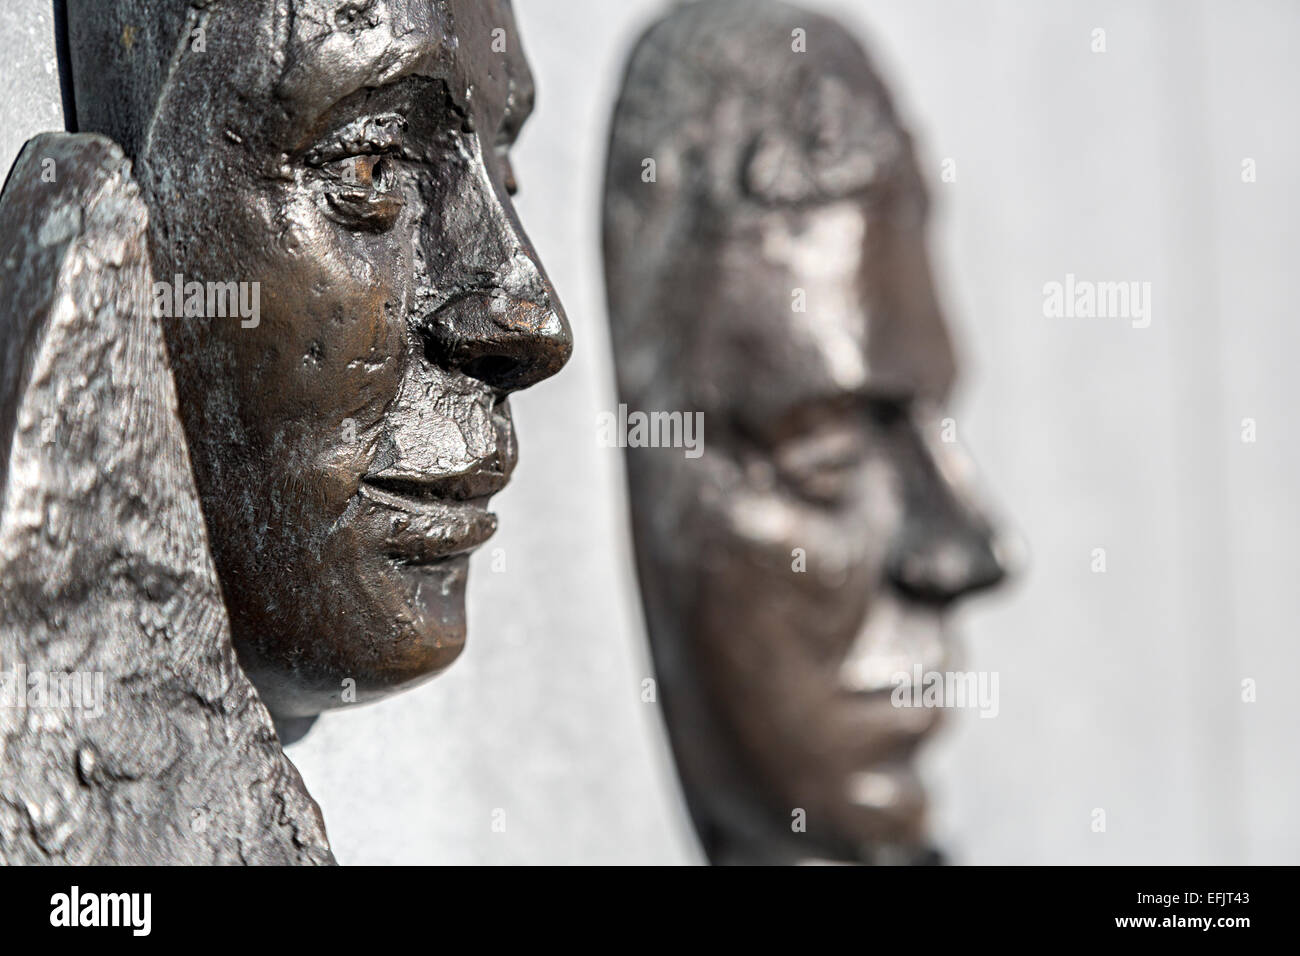 Visages en bronze sur le John F. Kennedy Memorial sur le quai de New Ross, dans le comté de Wexford, Irlande Photo Stock